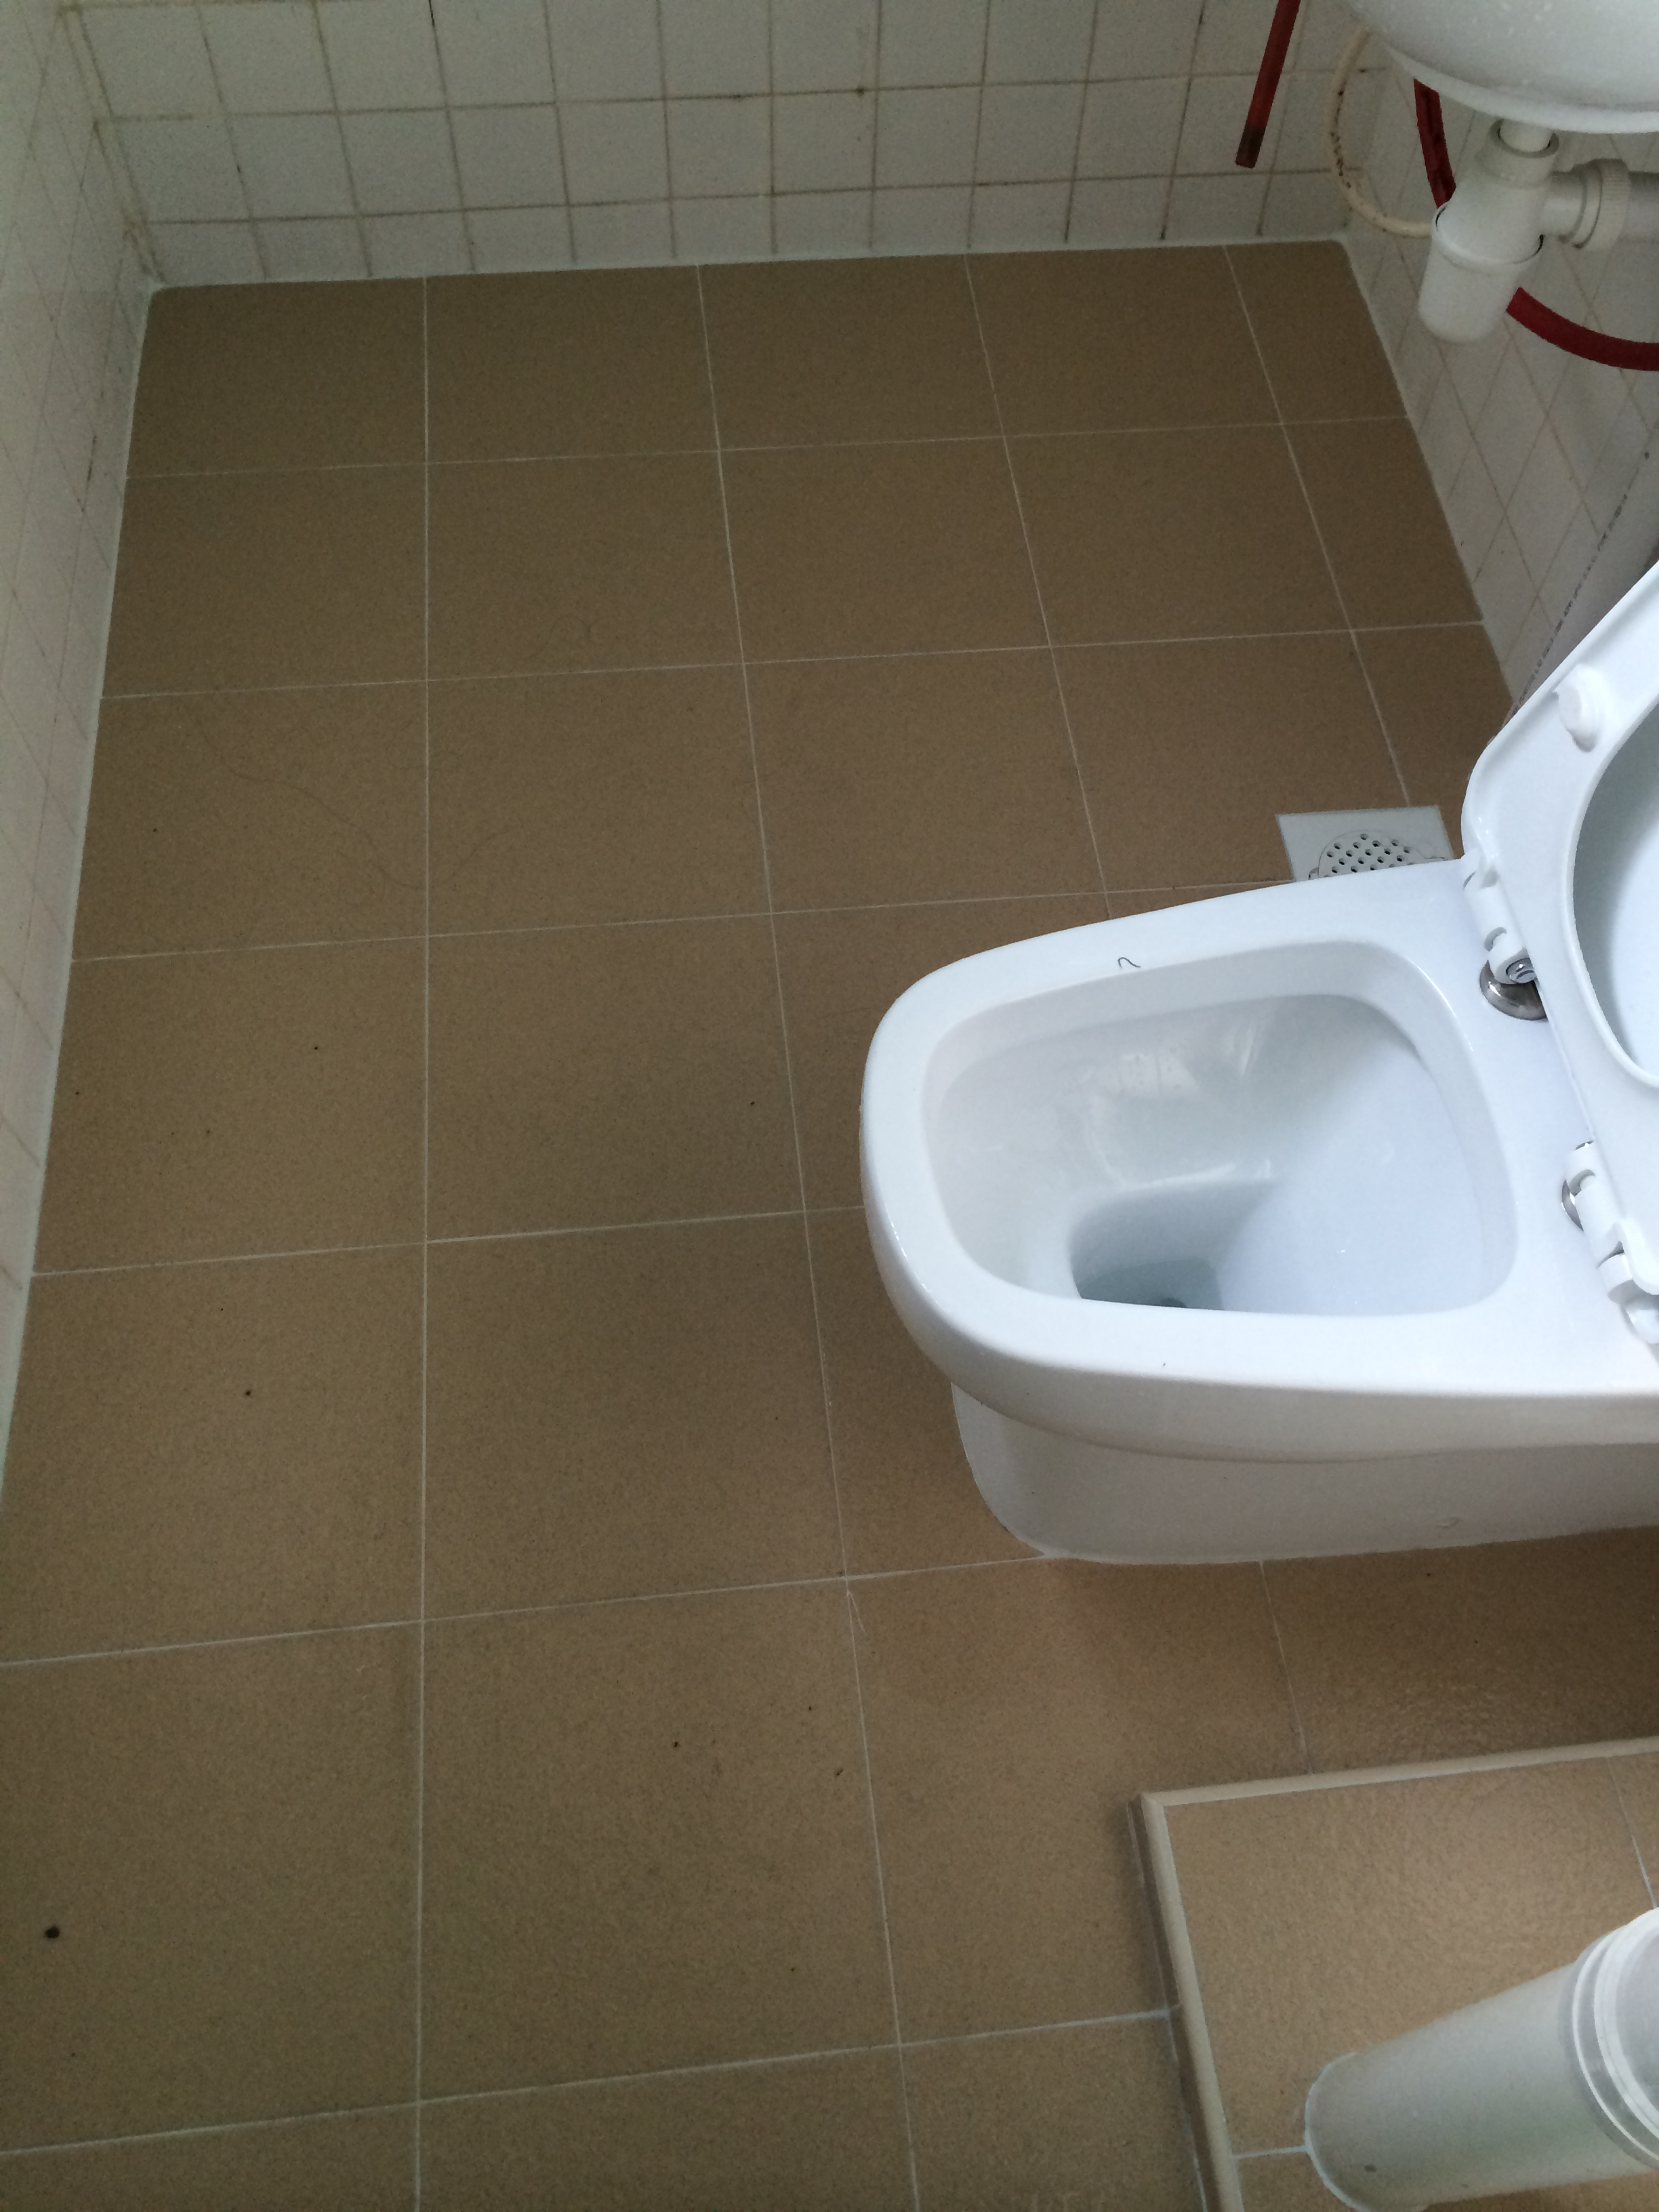 to rocking how toilet your floor stop interior projects gettyimages from home